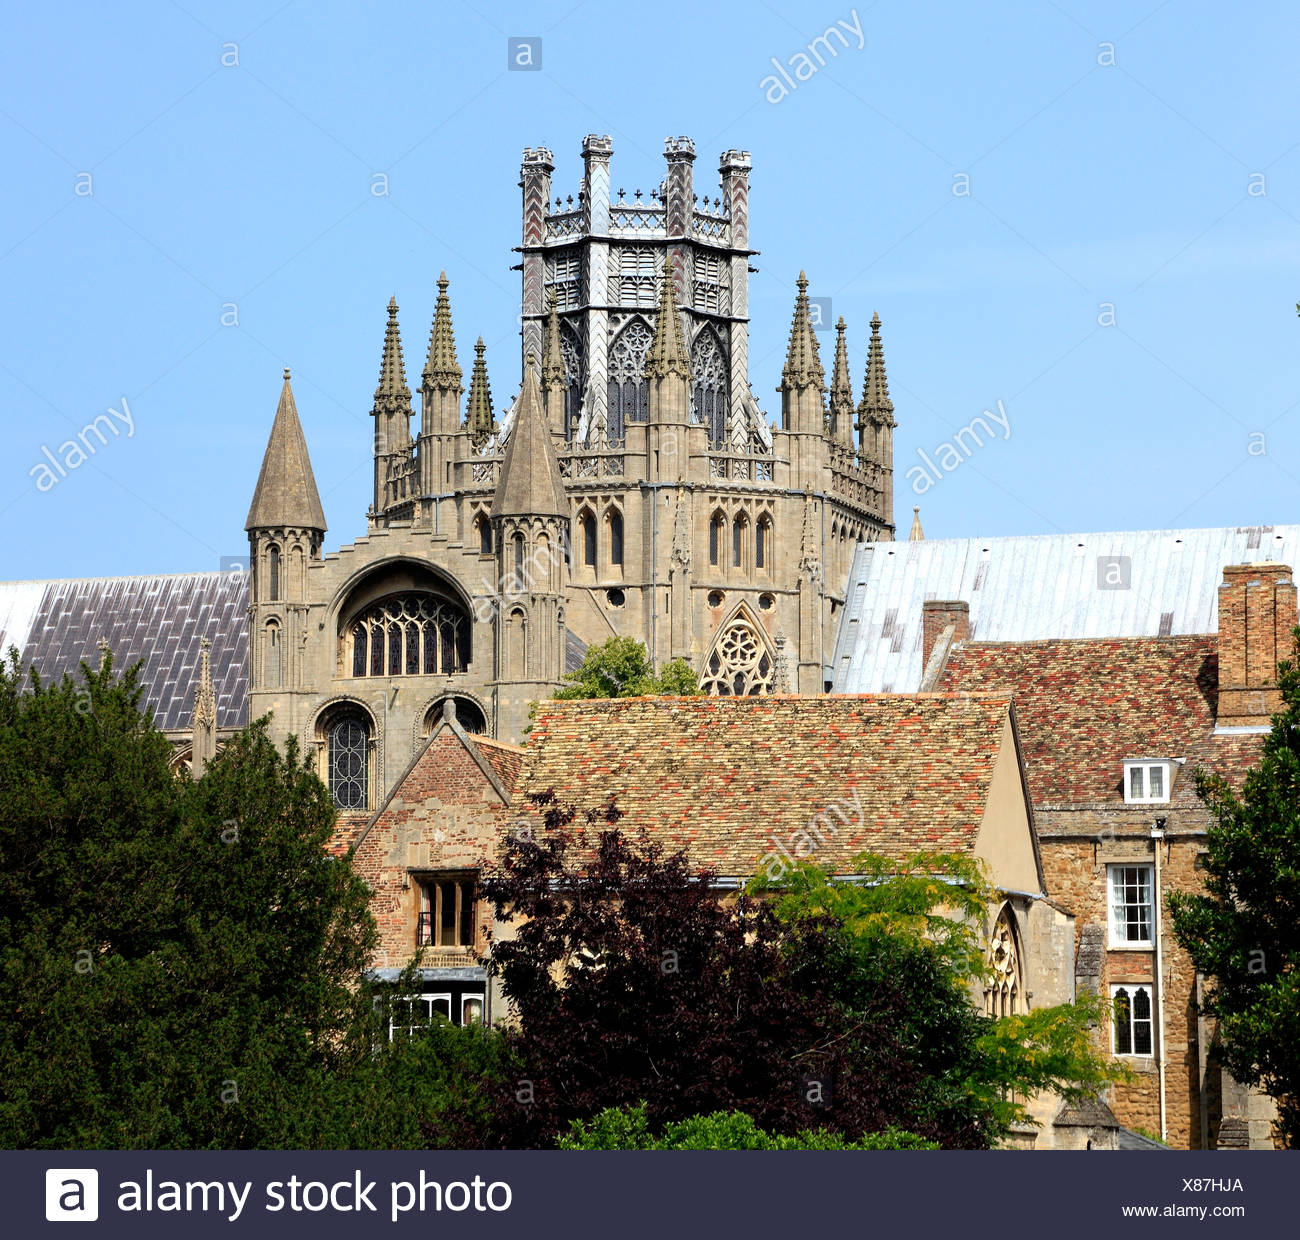 Ely Cathedral, Octagon and Lantern towers, Cambridgeshire England UK English medieval cathedrals tower precinct - Stock Image